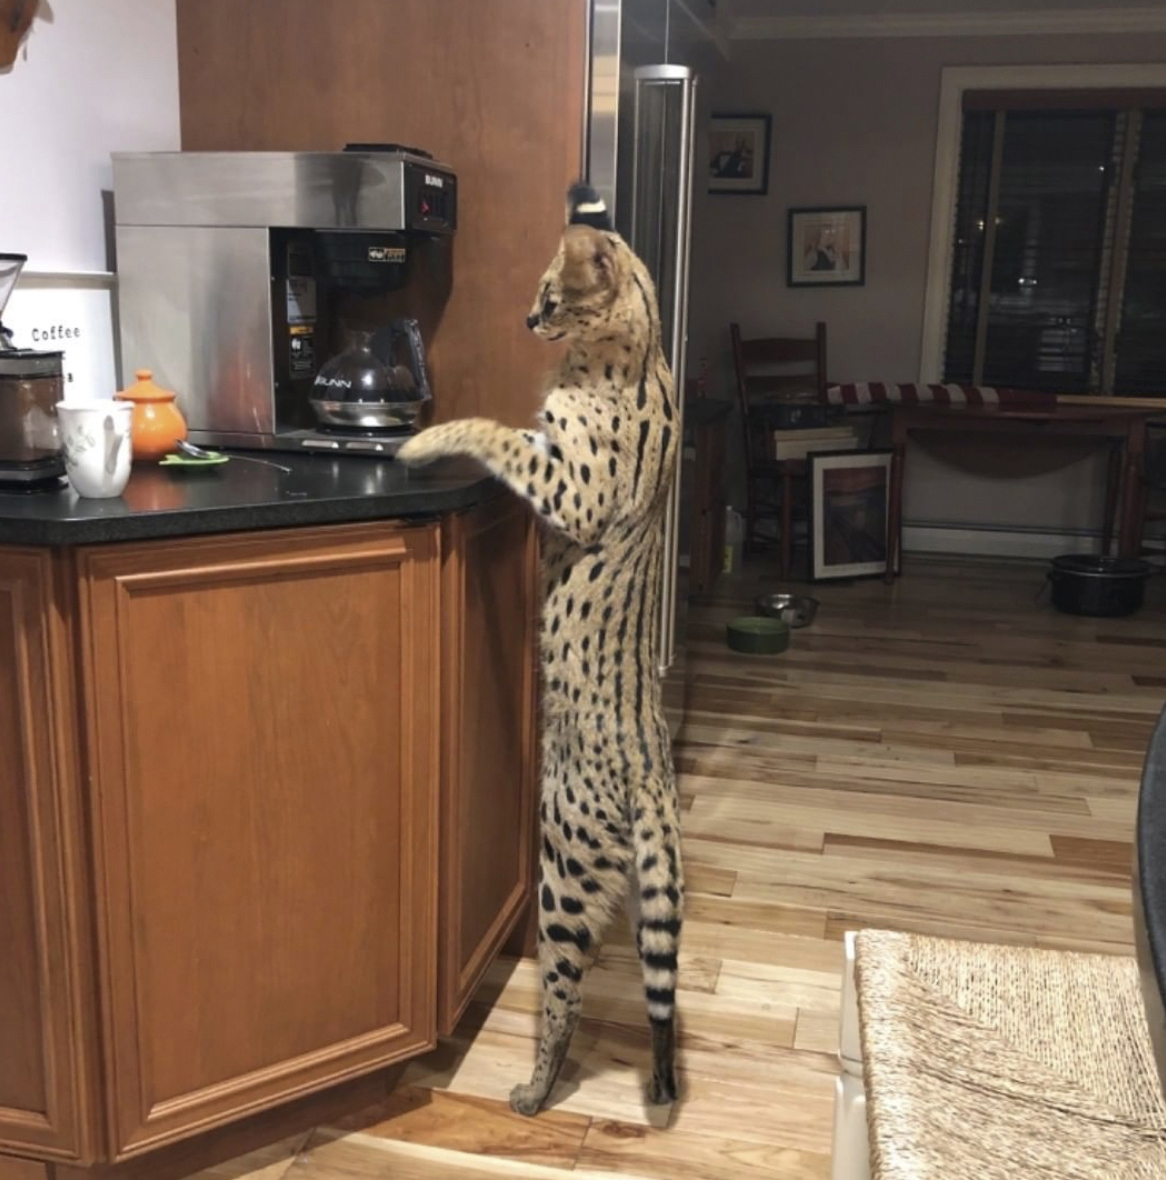 Merrimack Nh Halloween 2020 Spartacus the serval cat found safe after escape from home | ABC27